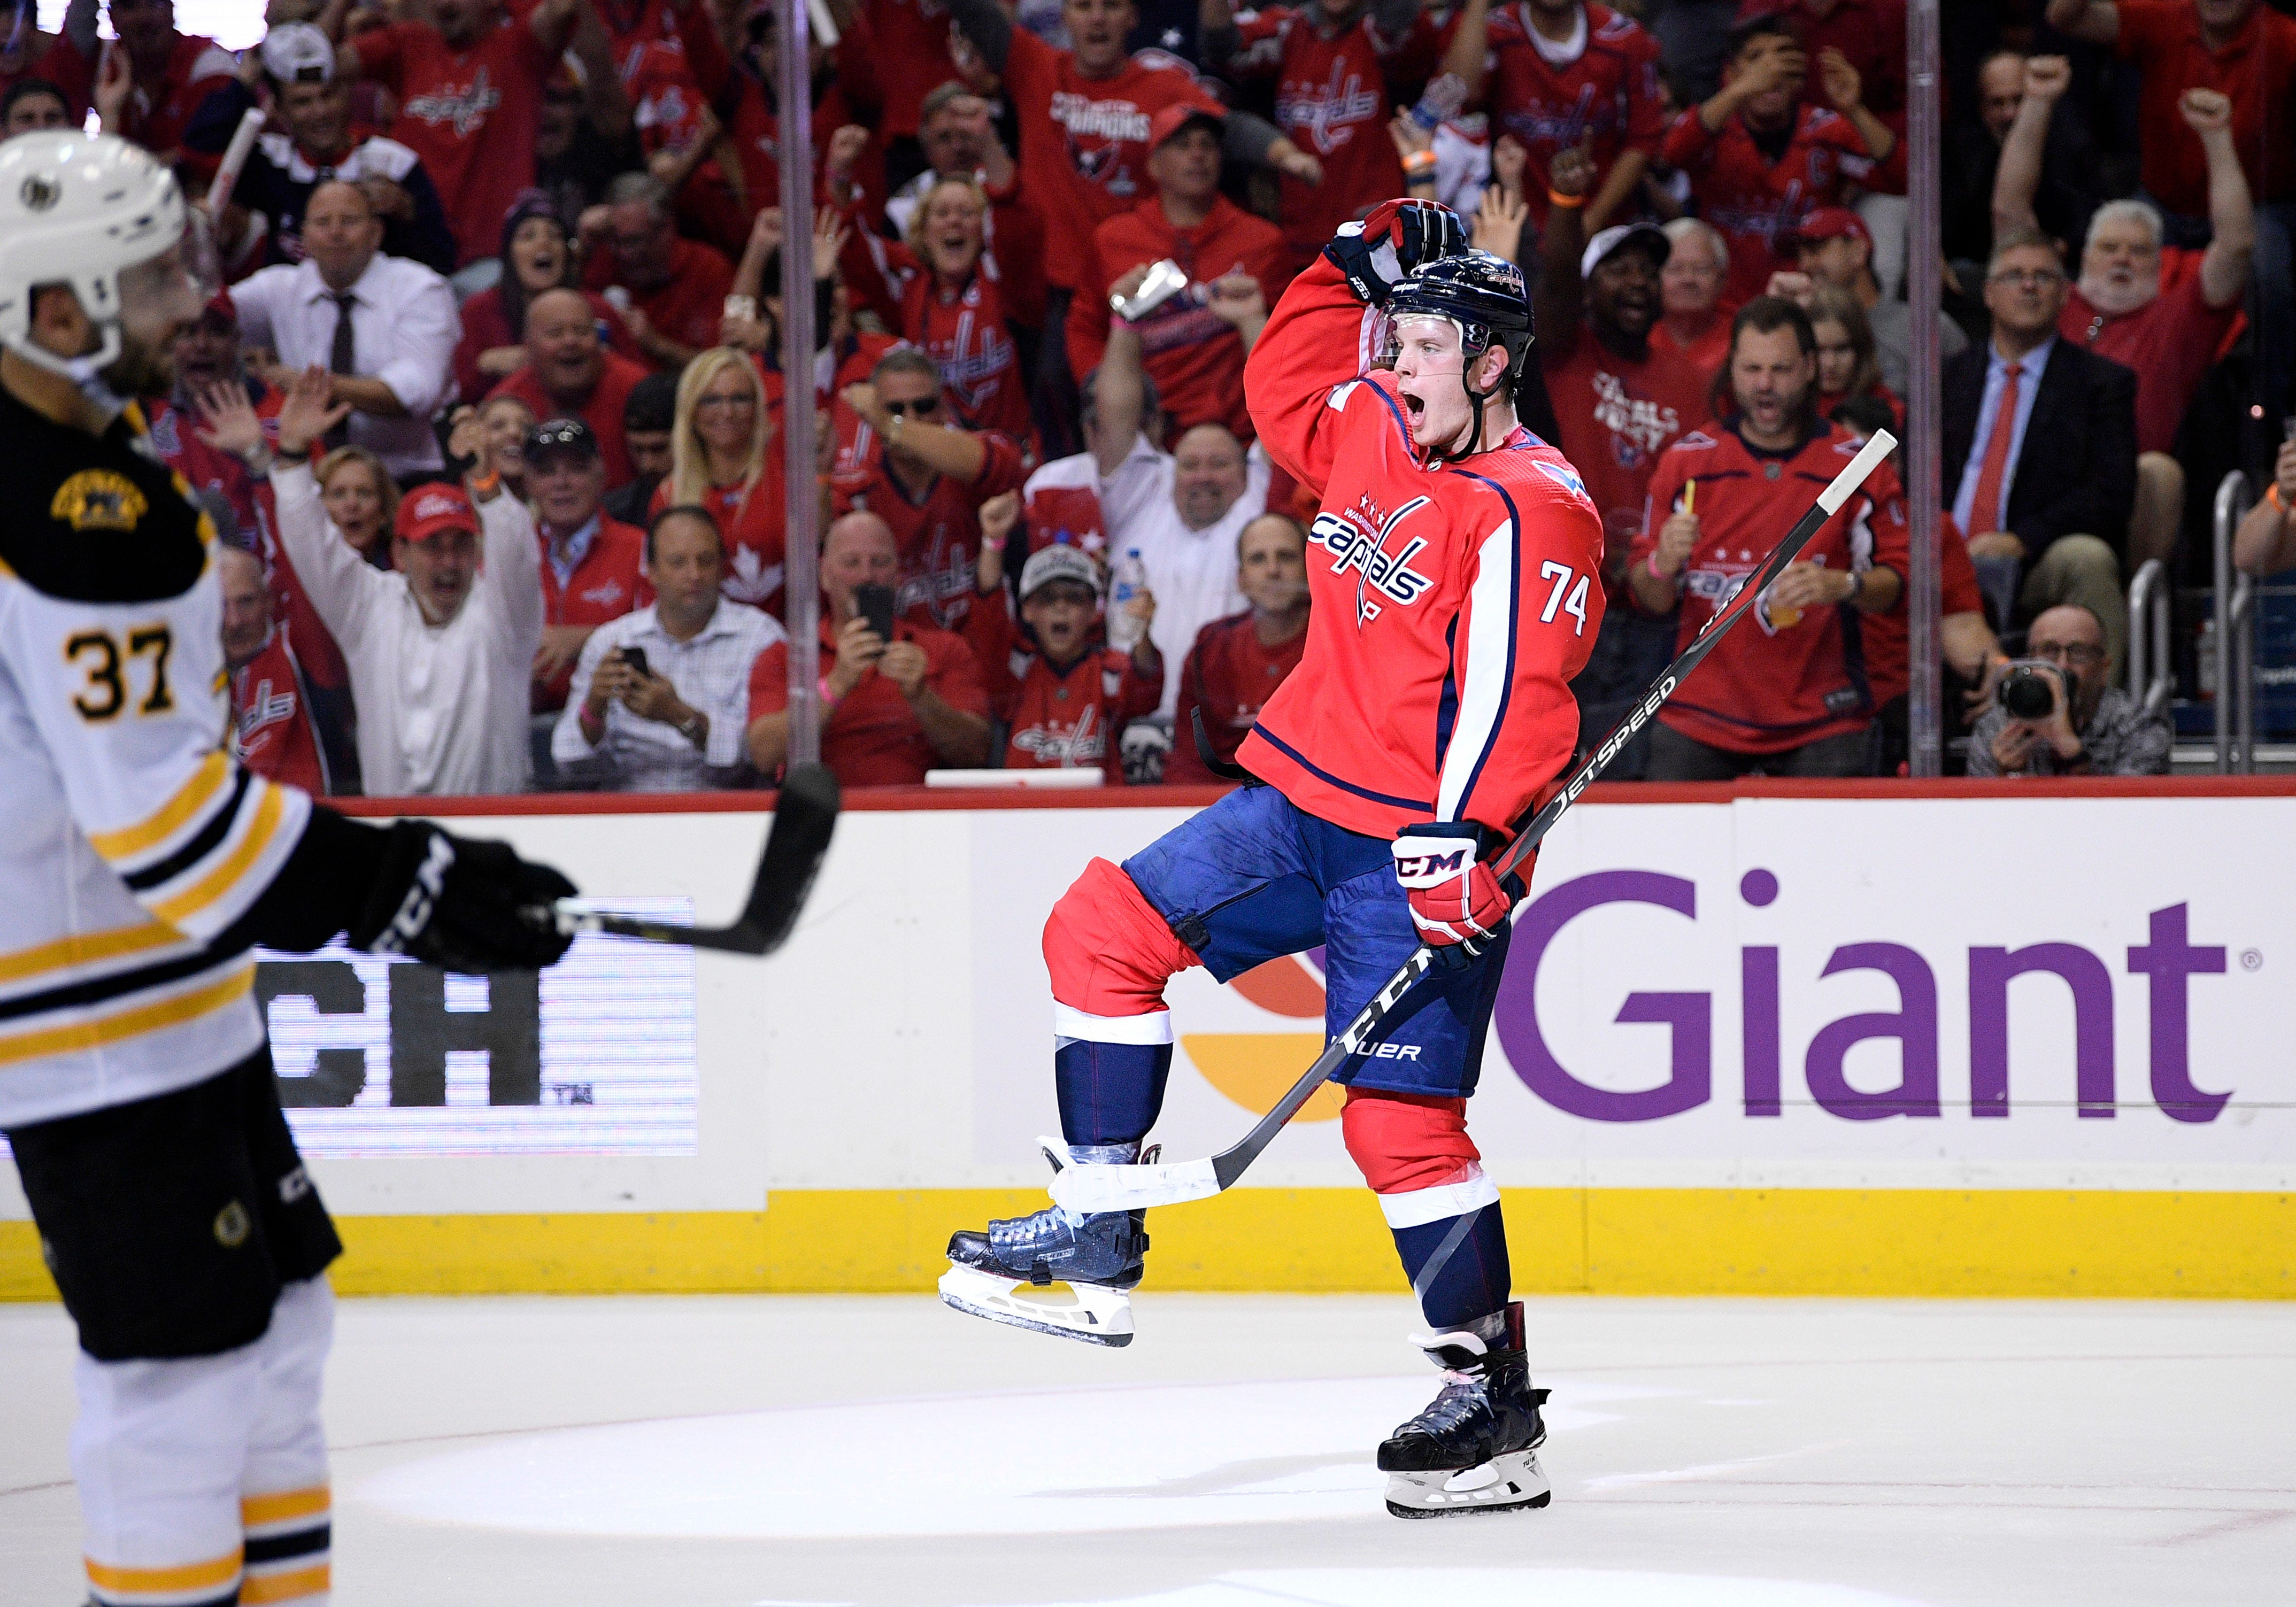 Capitals open Stanley Cup defense with 7-0 rout of Bruins